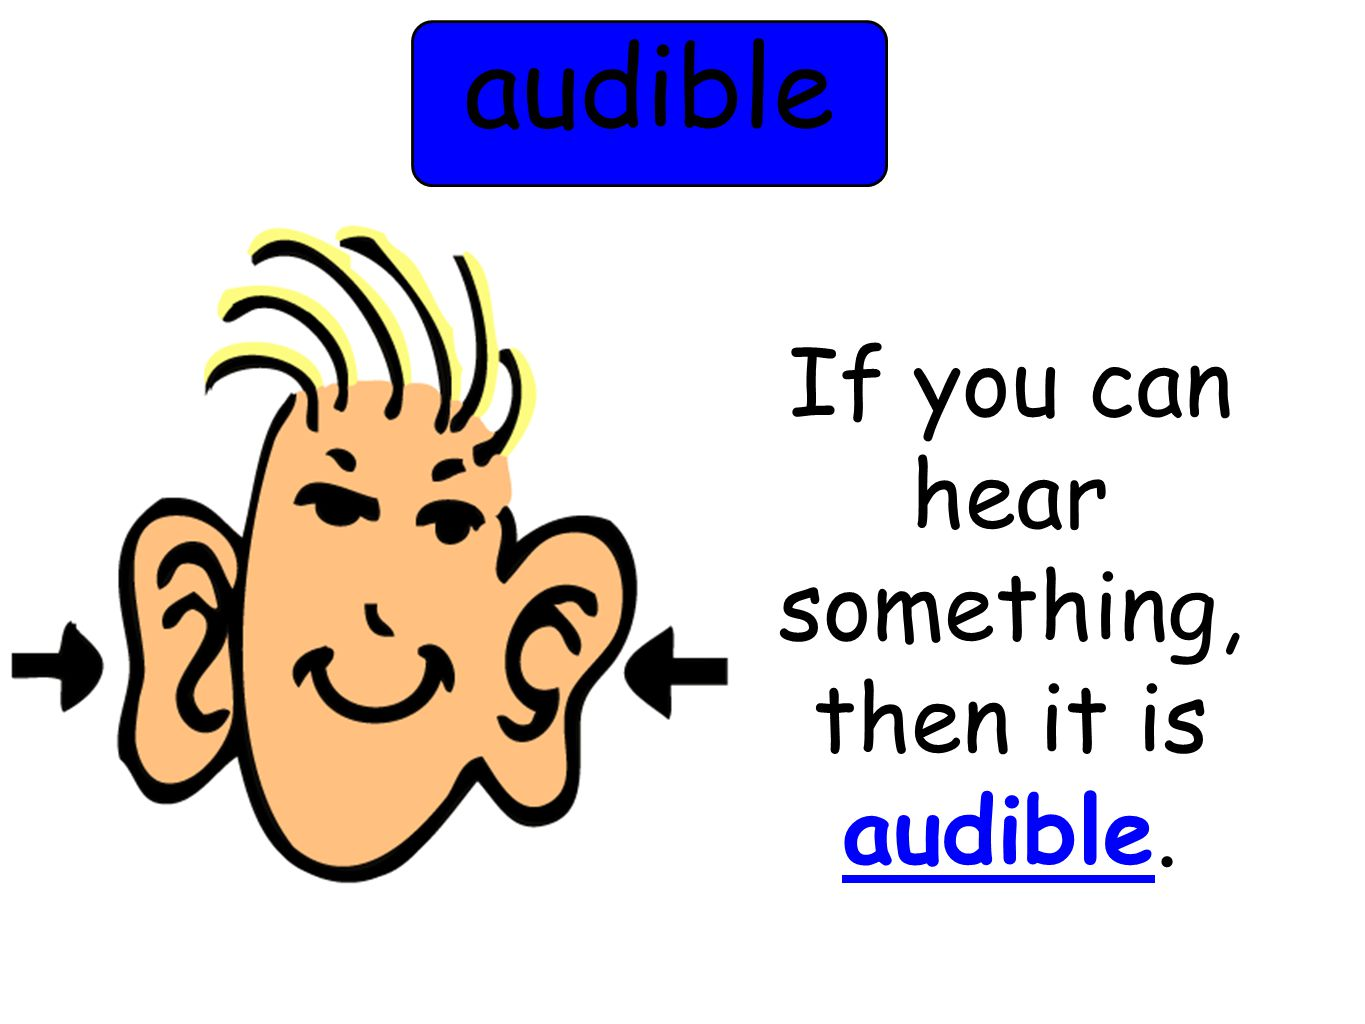 audible If you can hear something, then it is audible.